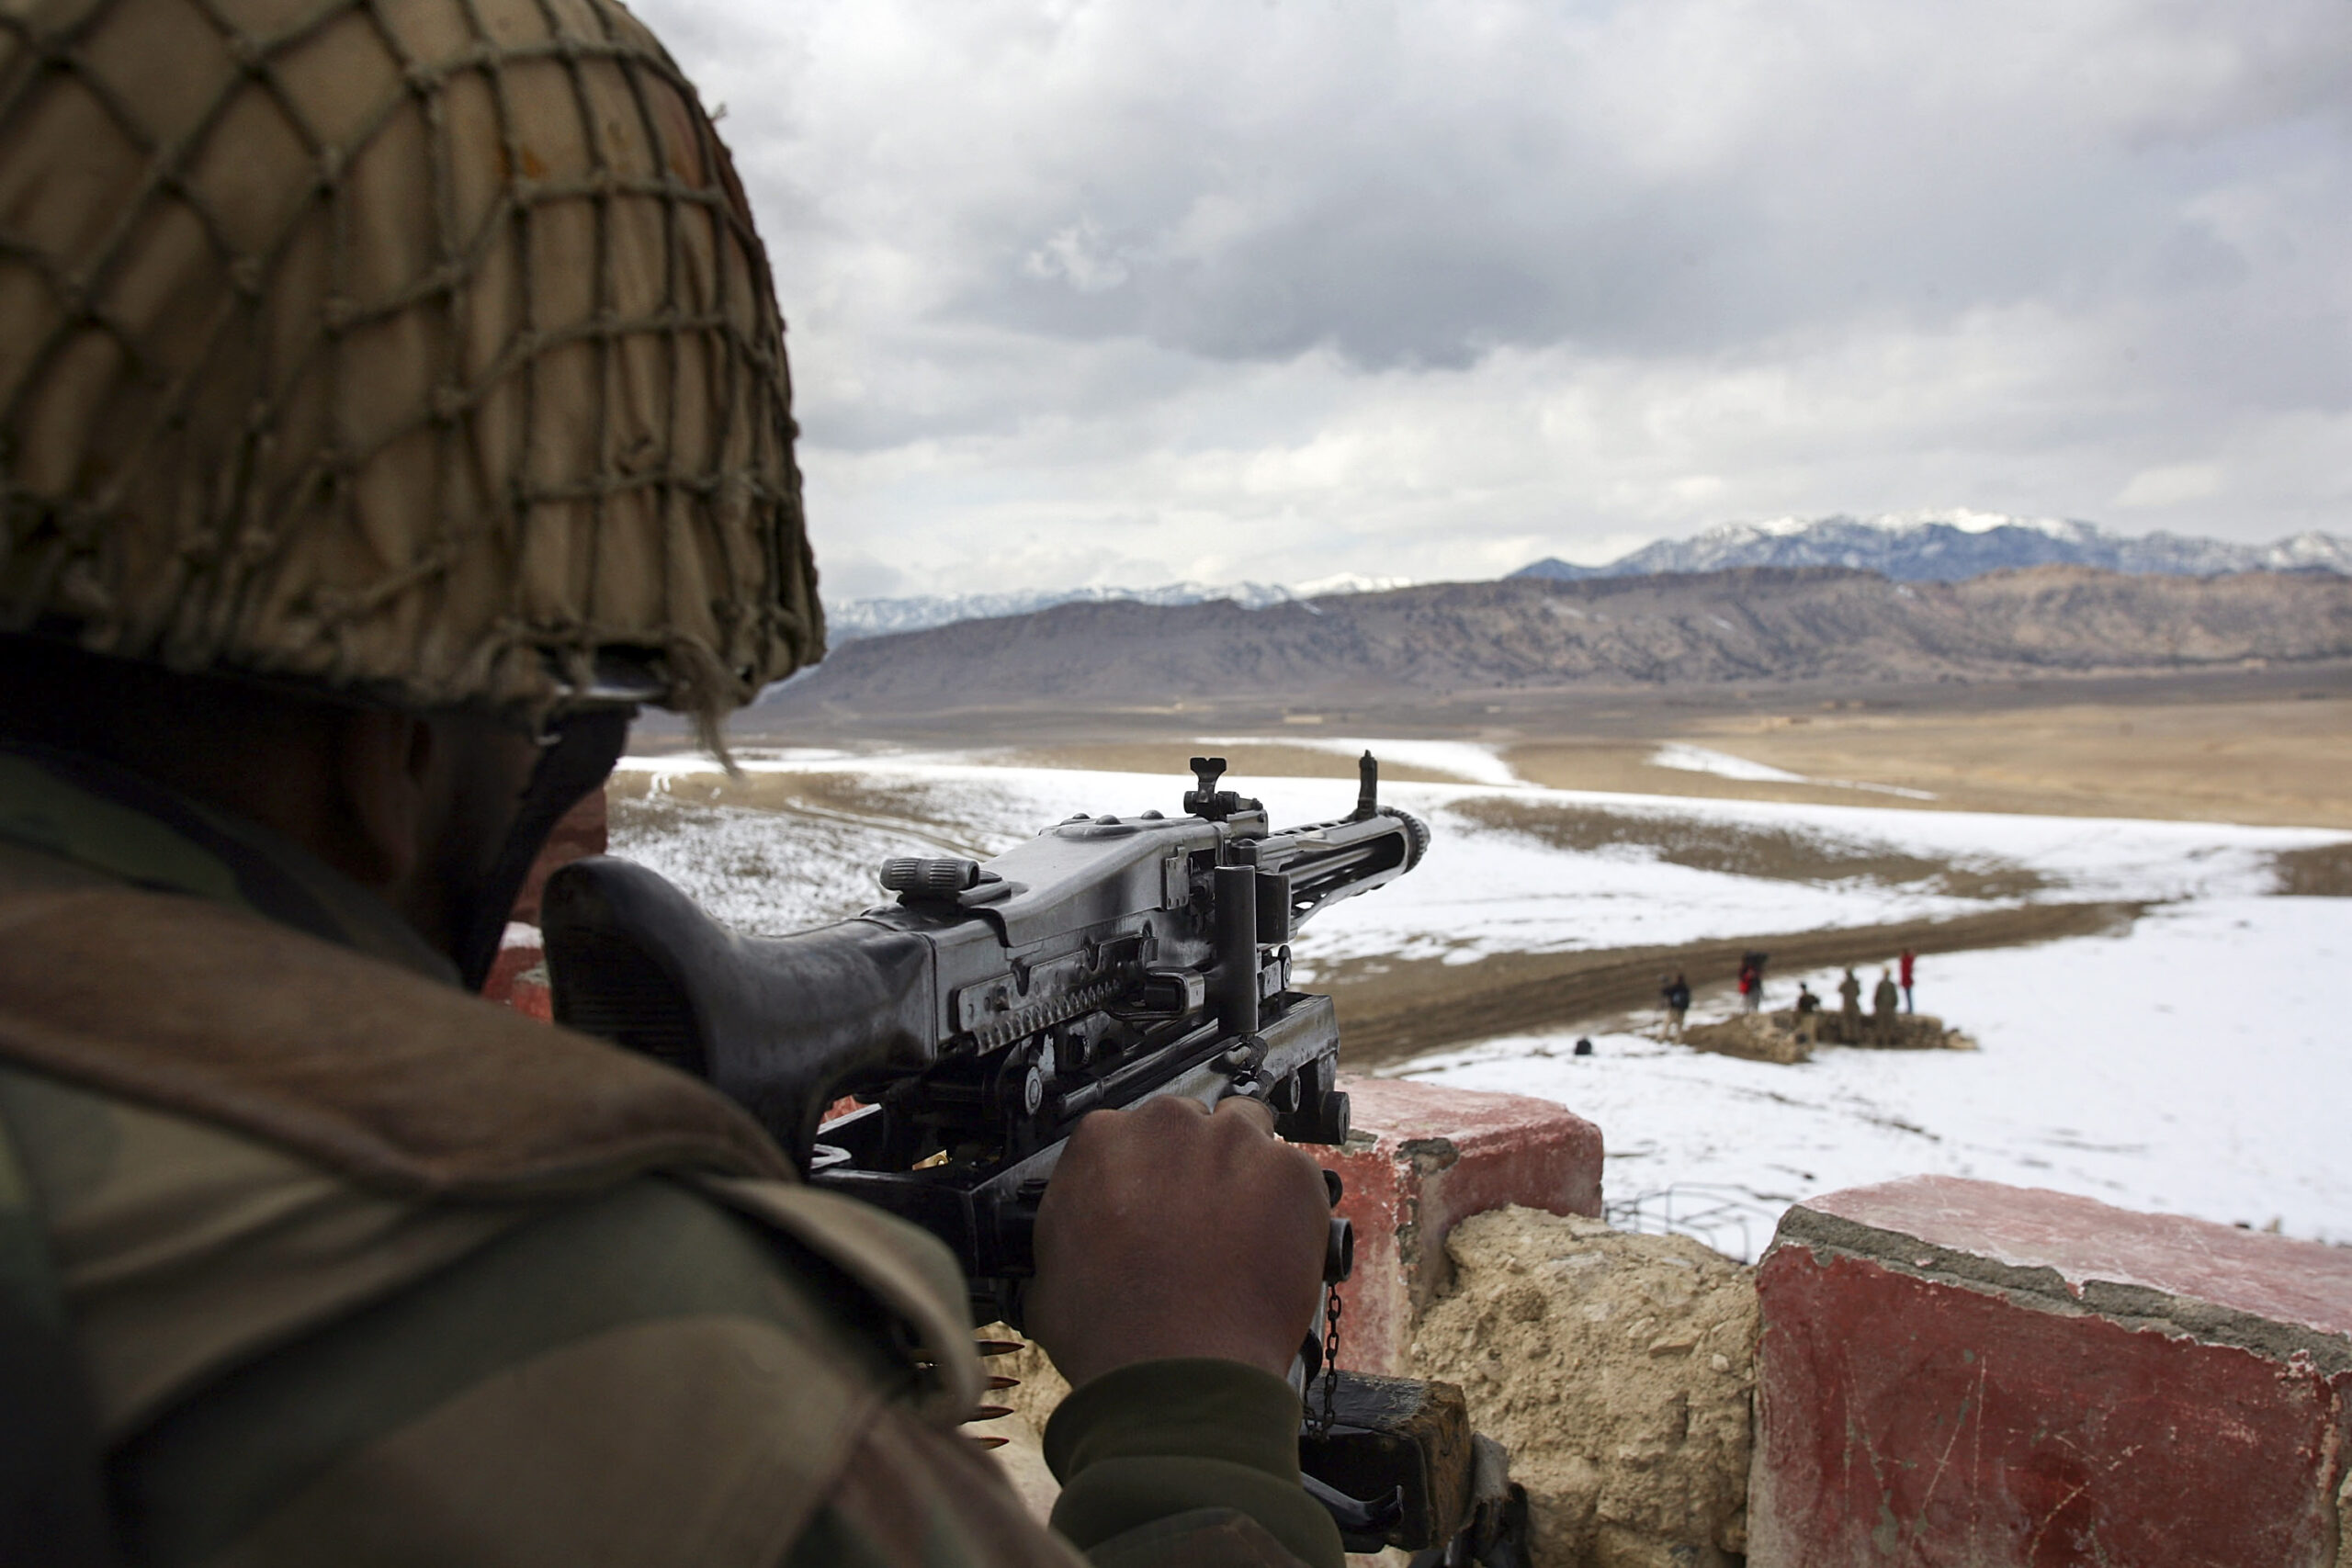 The United States Wants Pakistan To Keep Border Open For Afghan Refugees